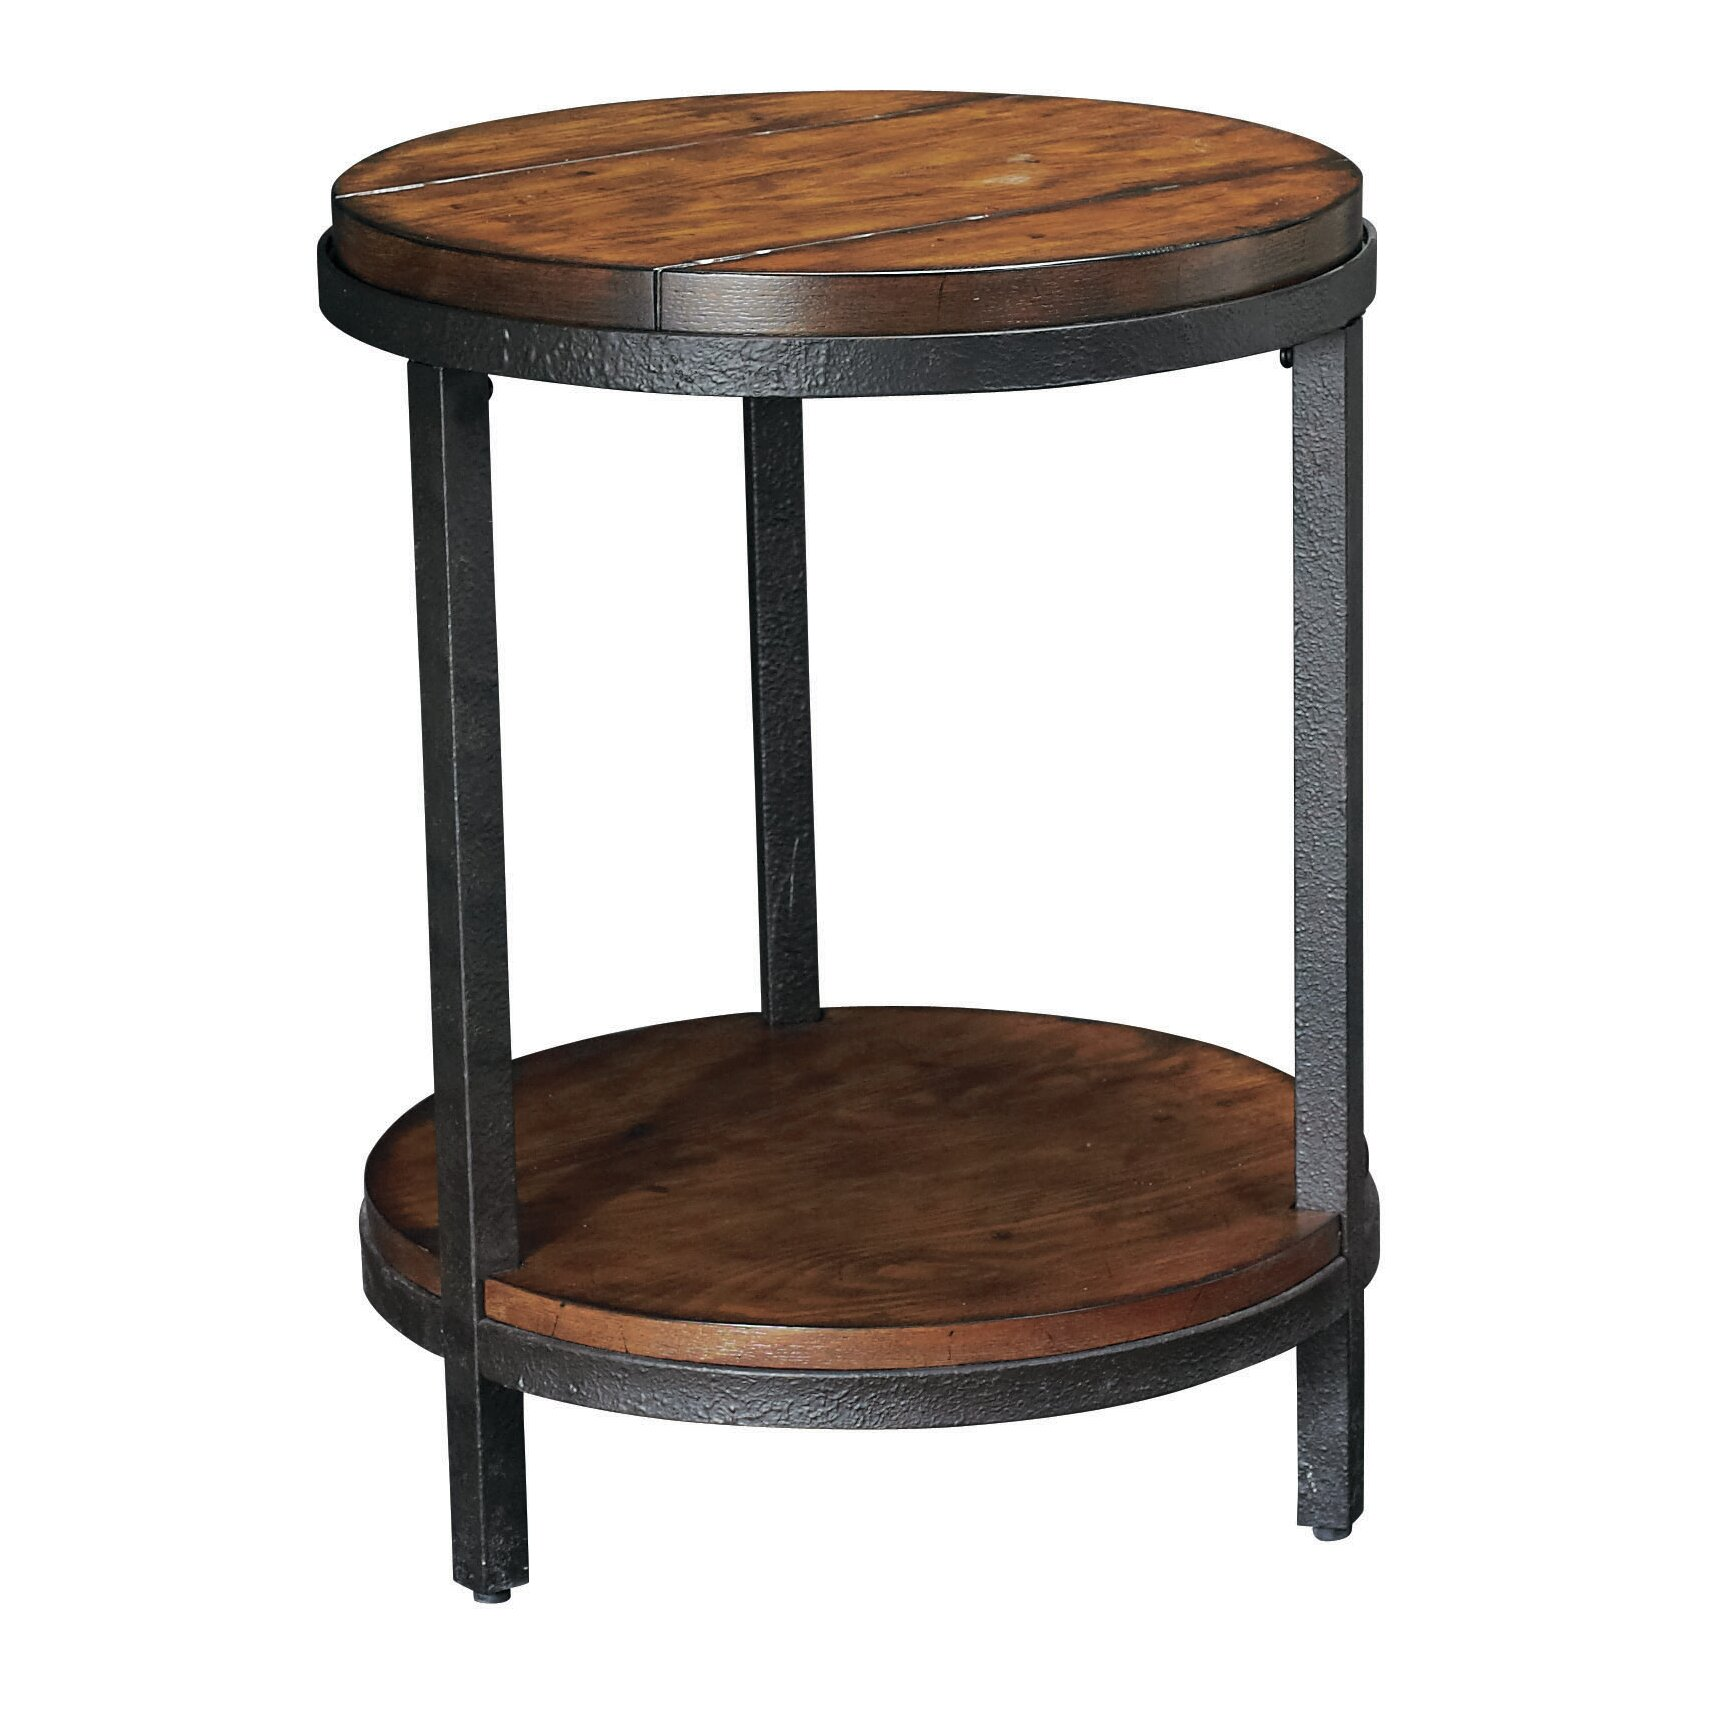 XQS1306 Further Baja End Table LOON2966 In Addition Folding